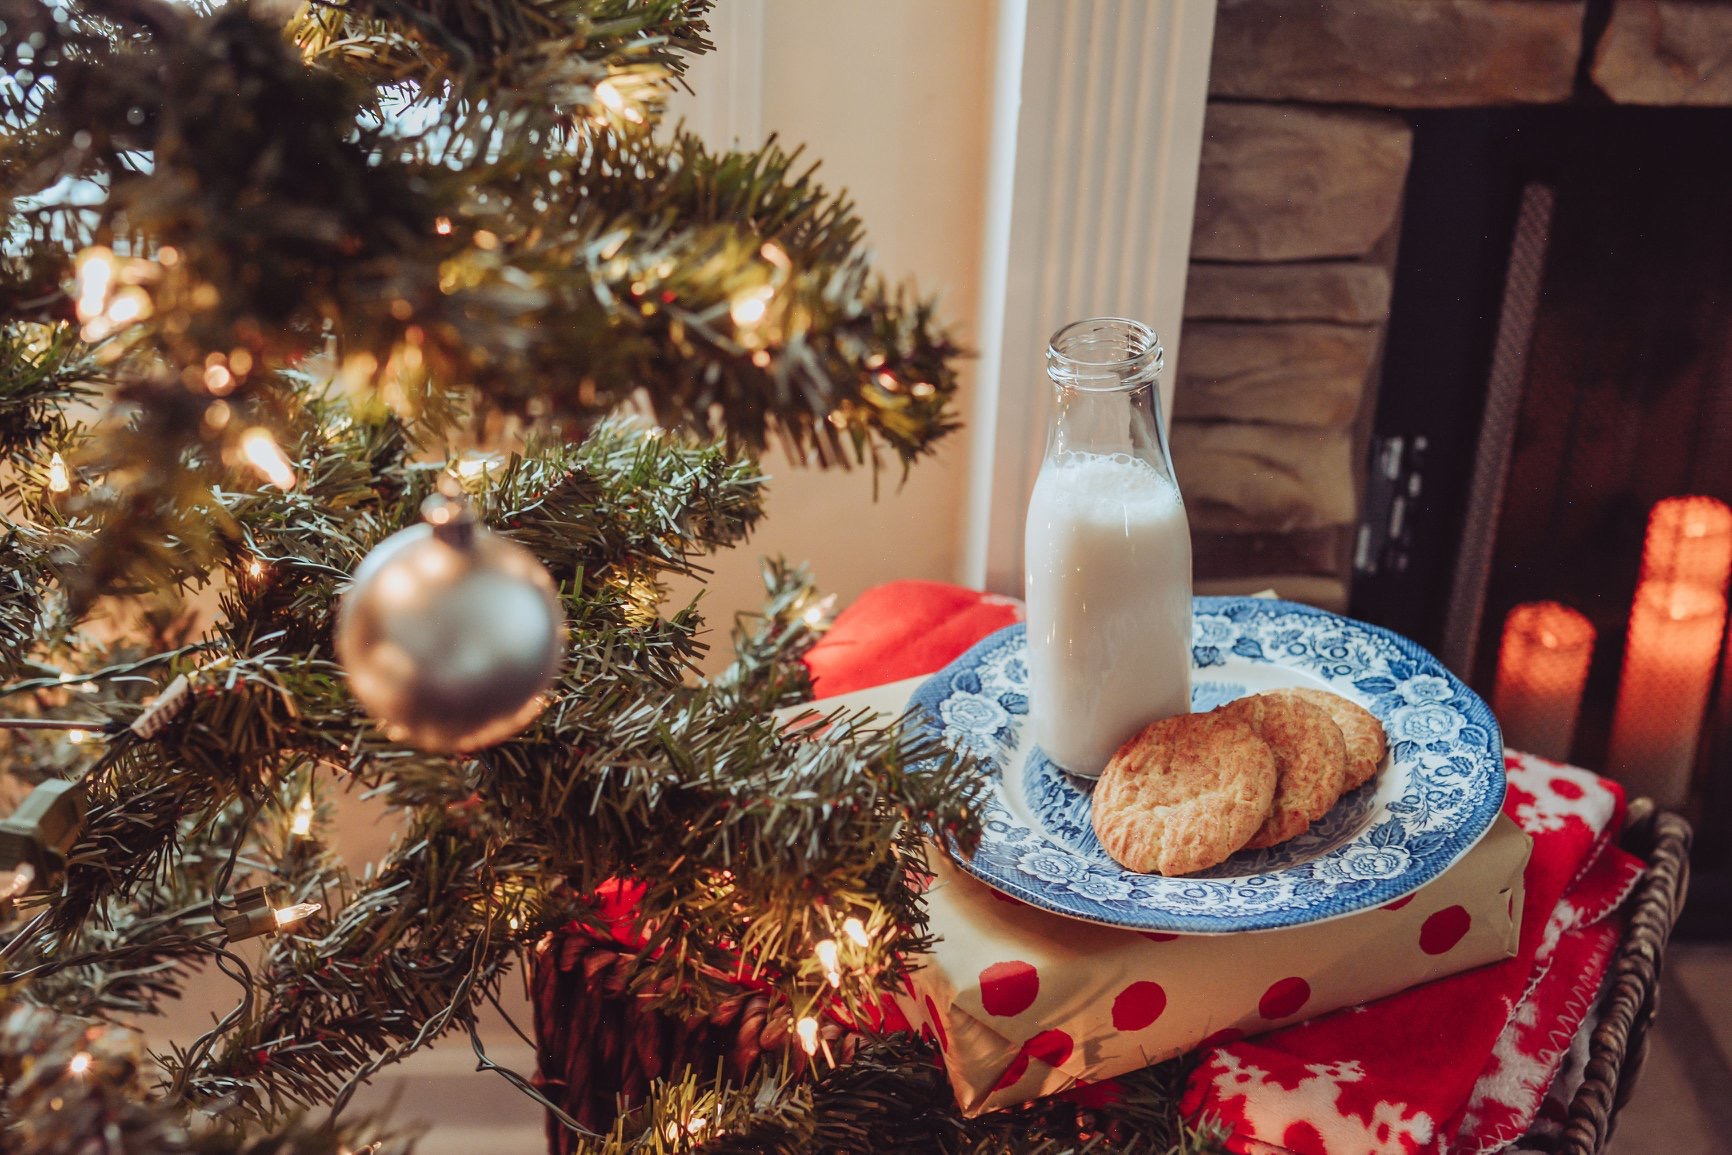 Easy and simple ideas for a more giving holiday season